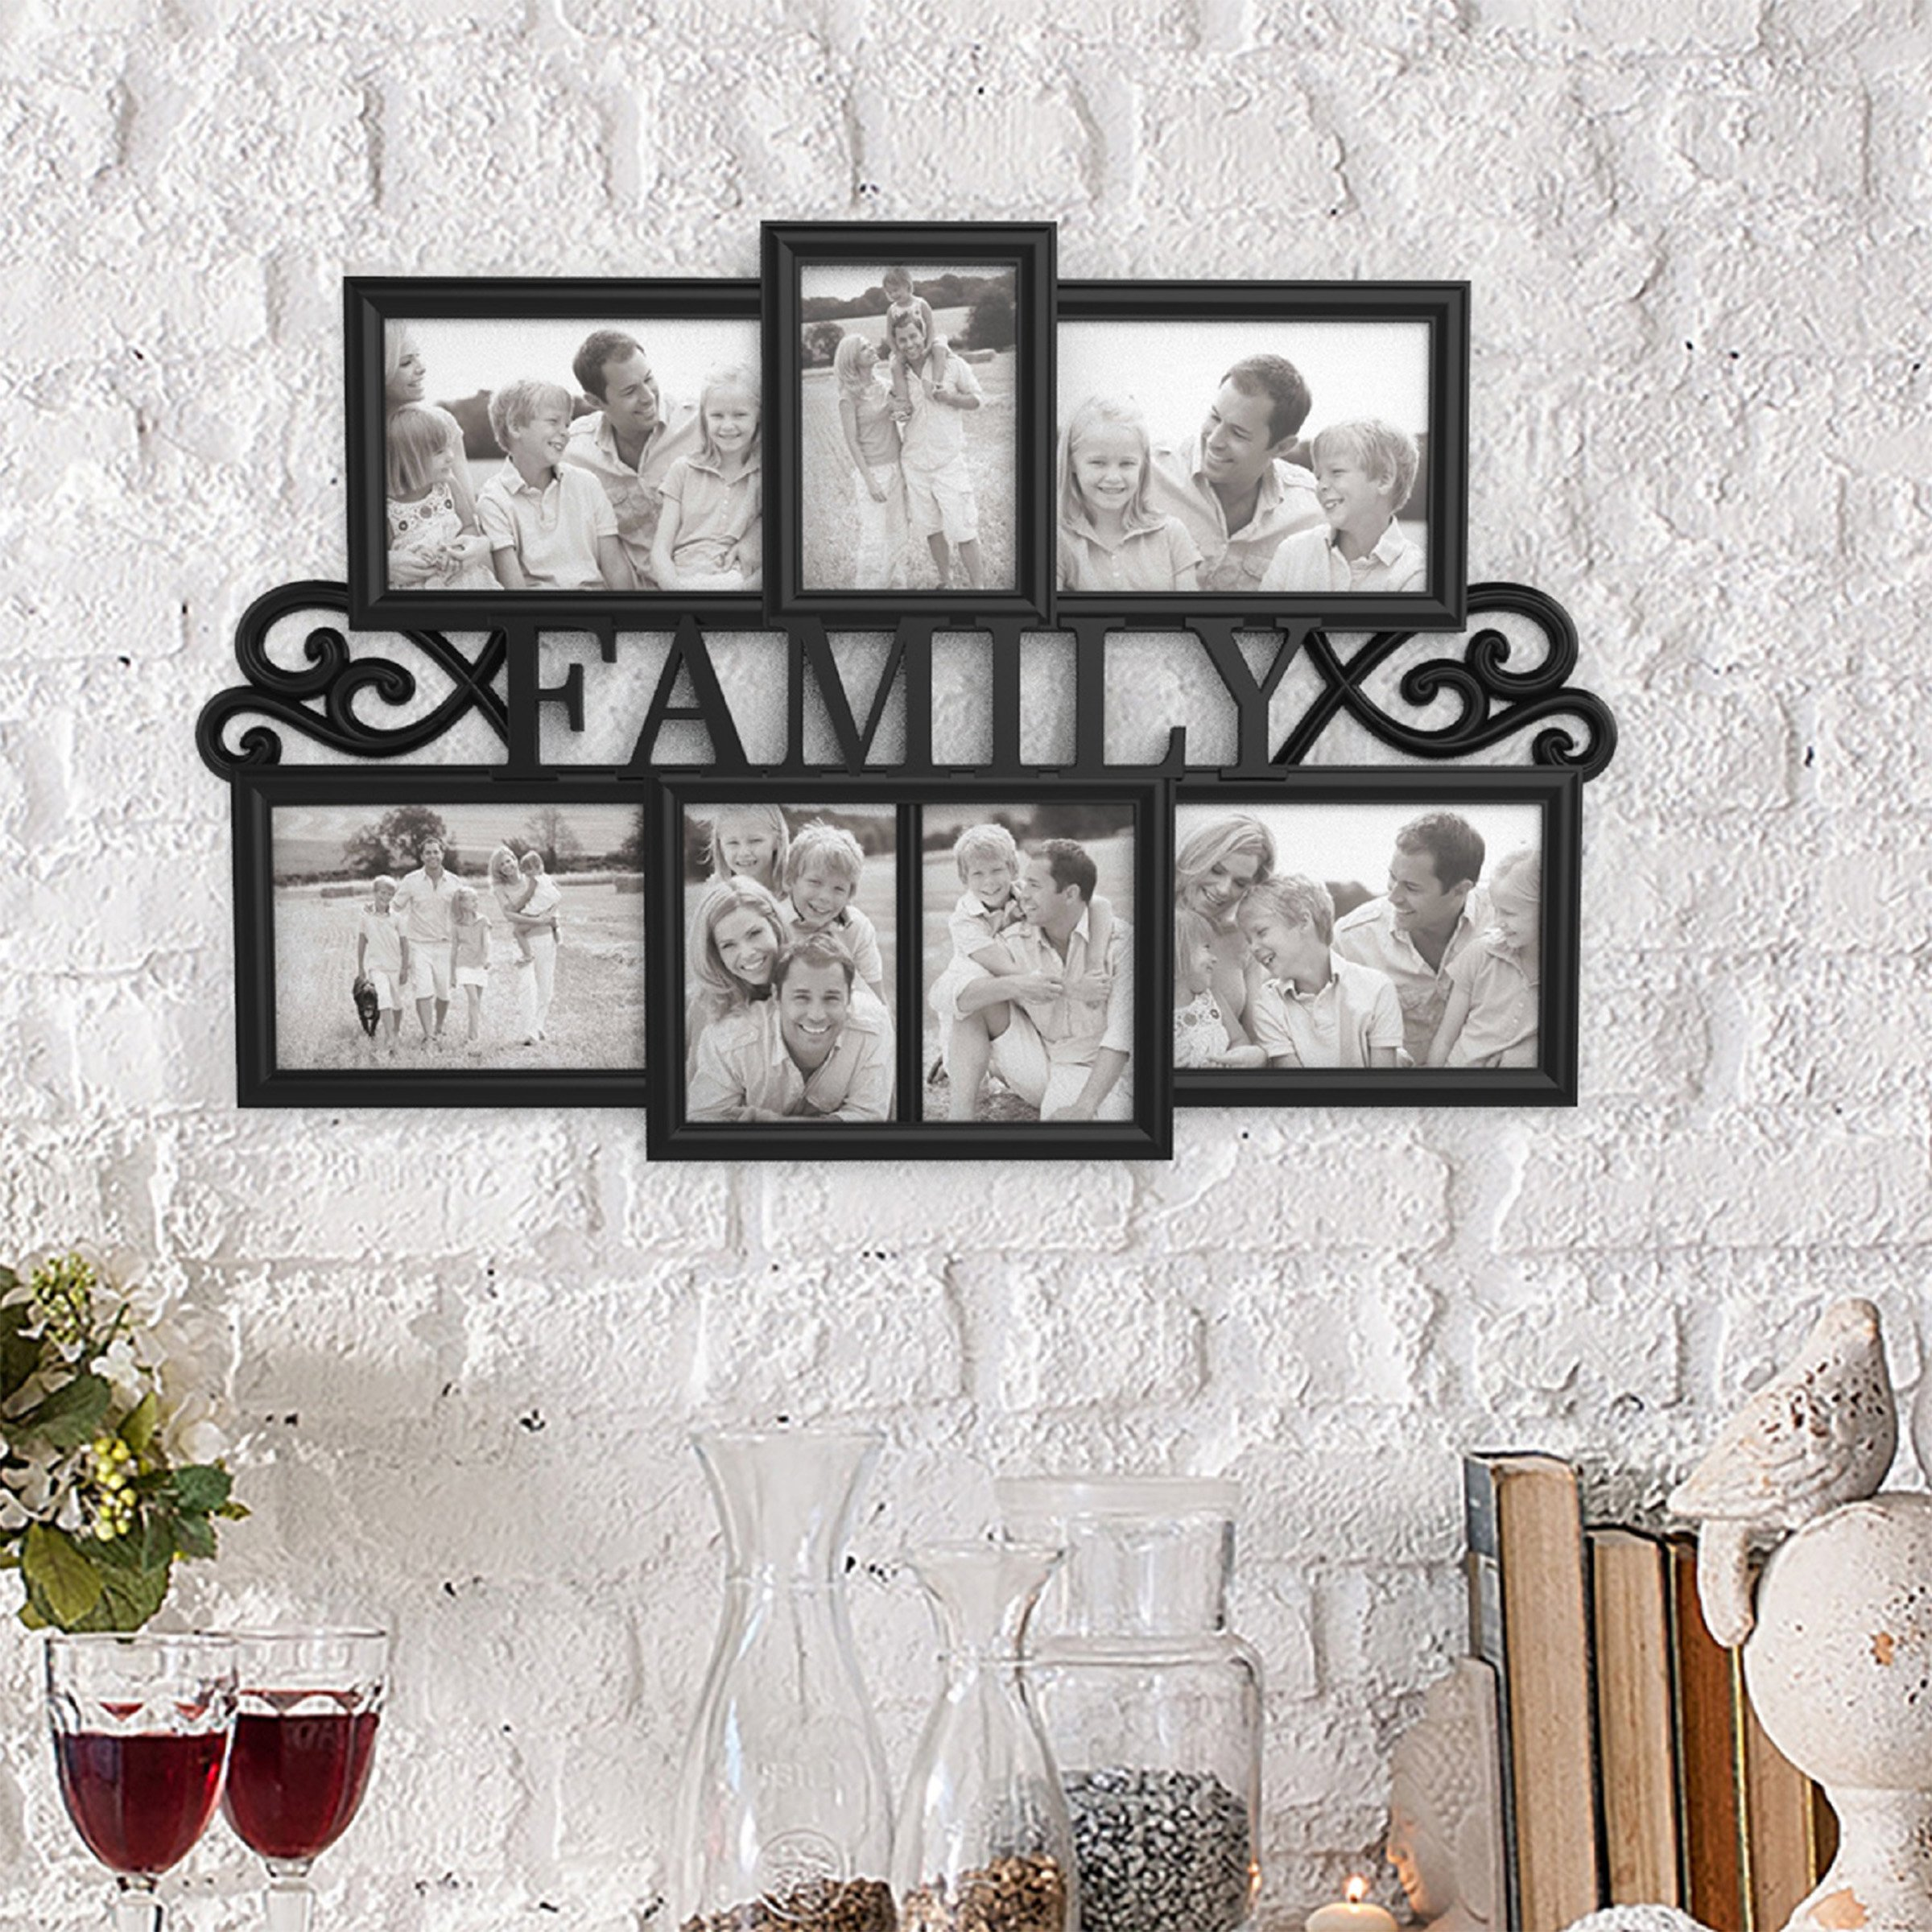 Lavish Home 80-COLL-3 Family Collage Picture Frame, Black by Lavish Home